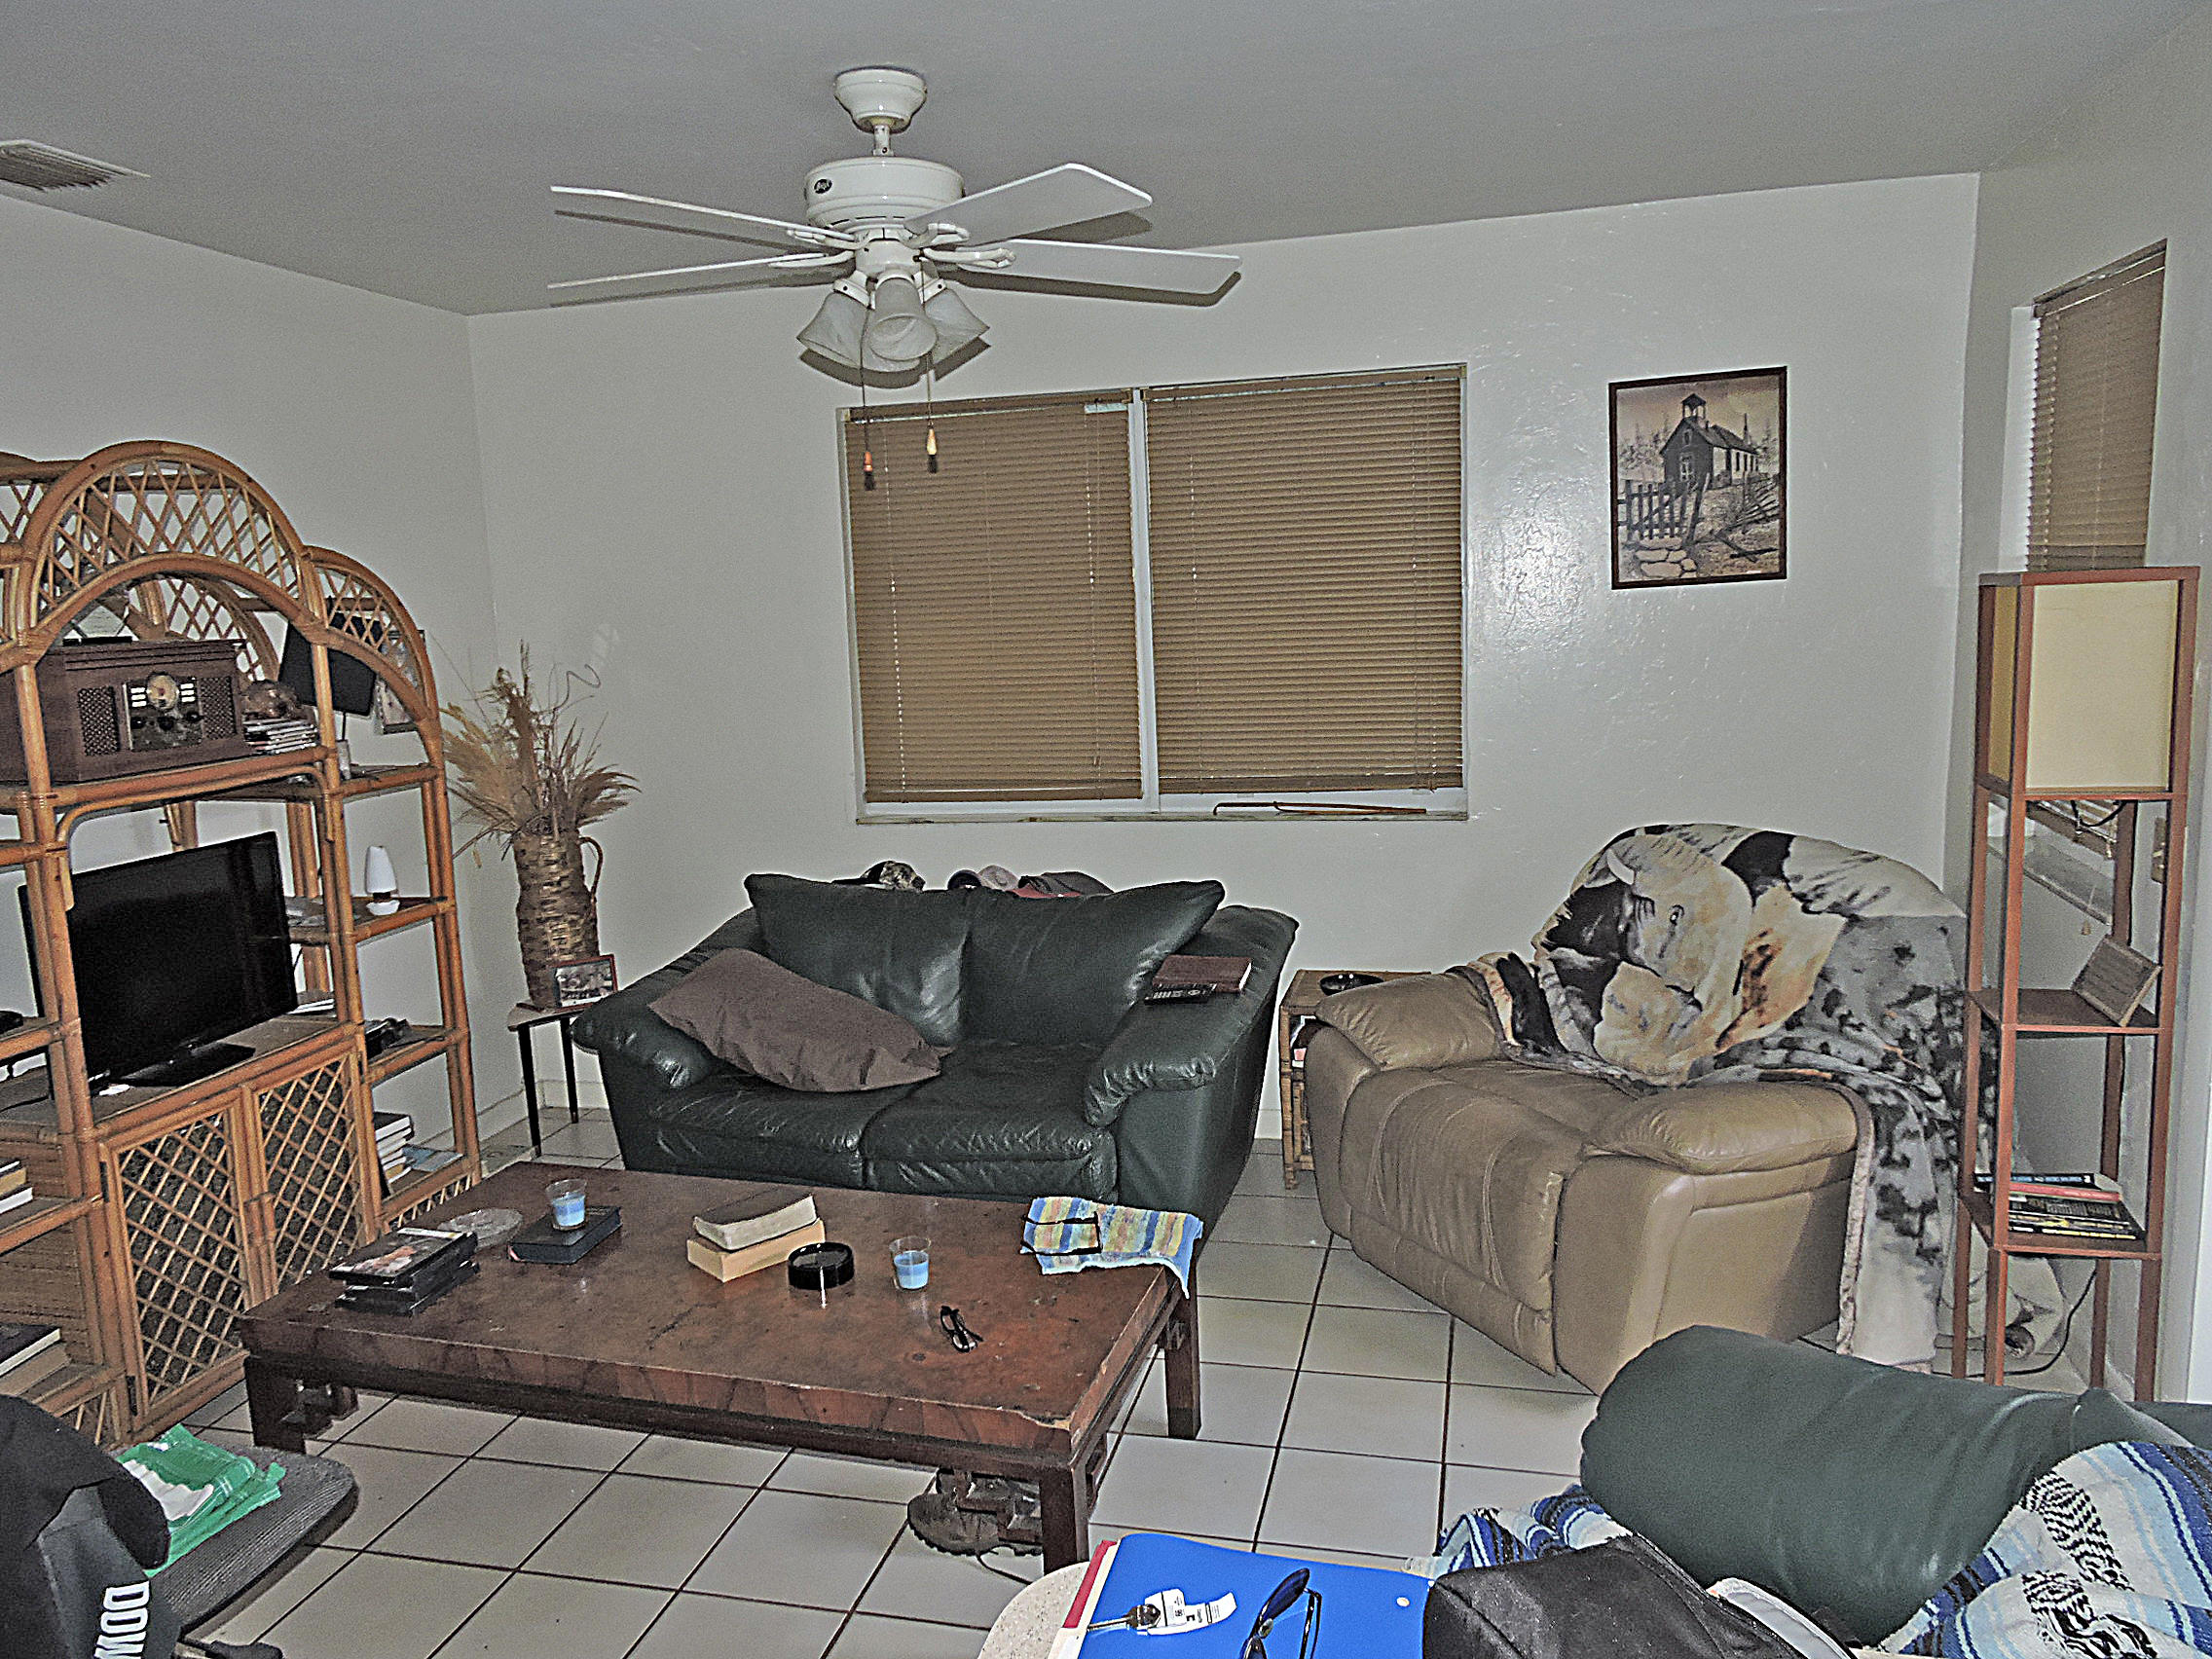 415 Lytle Street, West Palm Beach, Florida 33405, ,Quadplex,For Sale,Lytle,RX-10446176